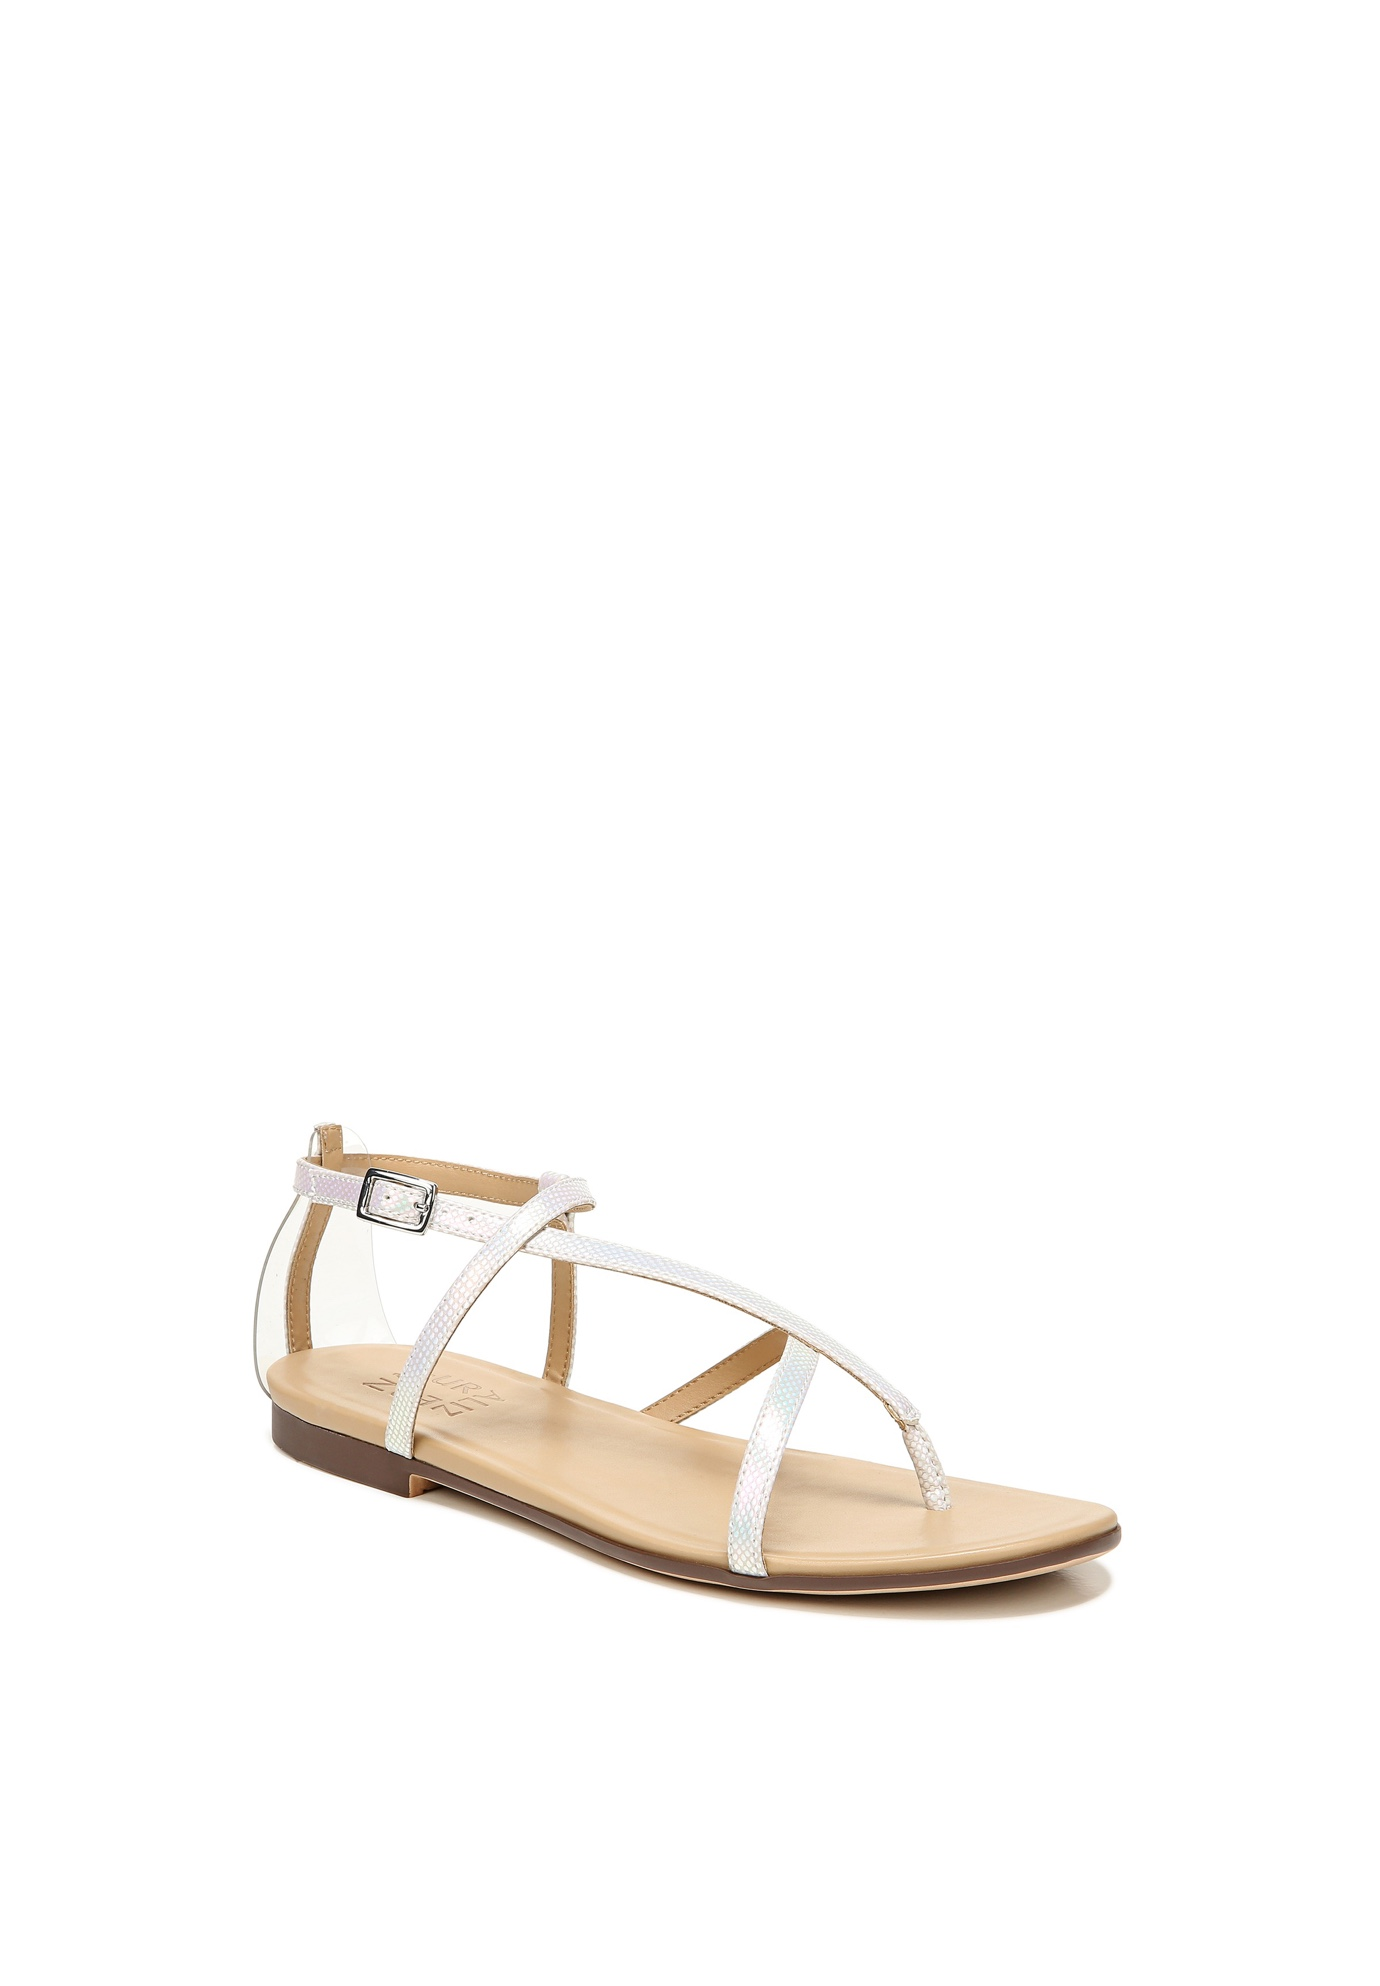 Tinsley2 Sandal by Naturalizer,